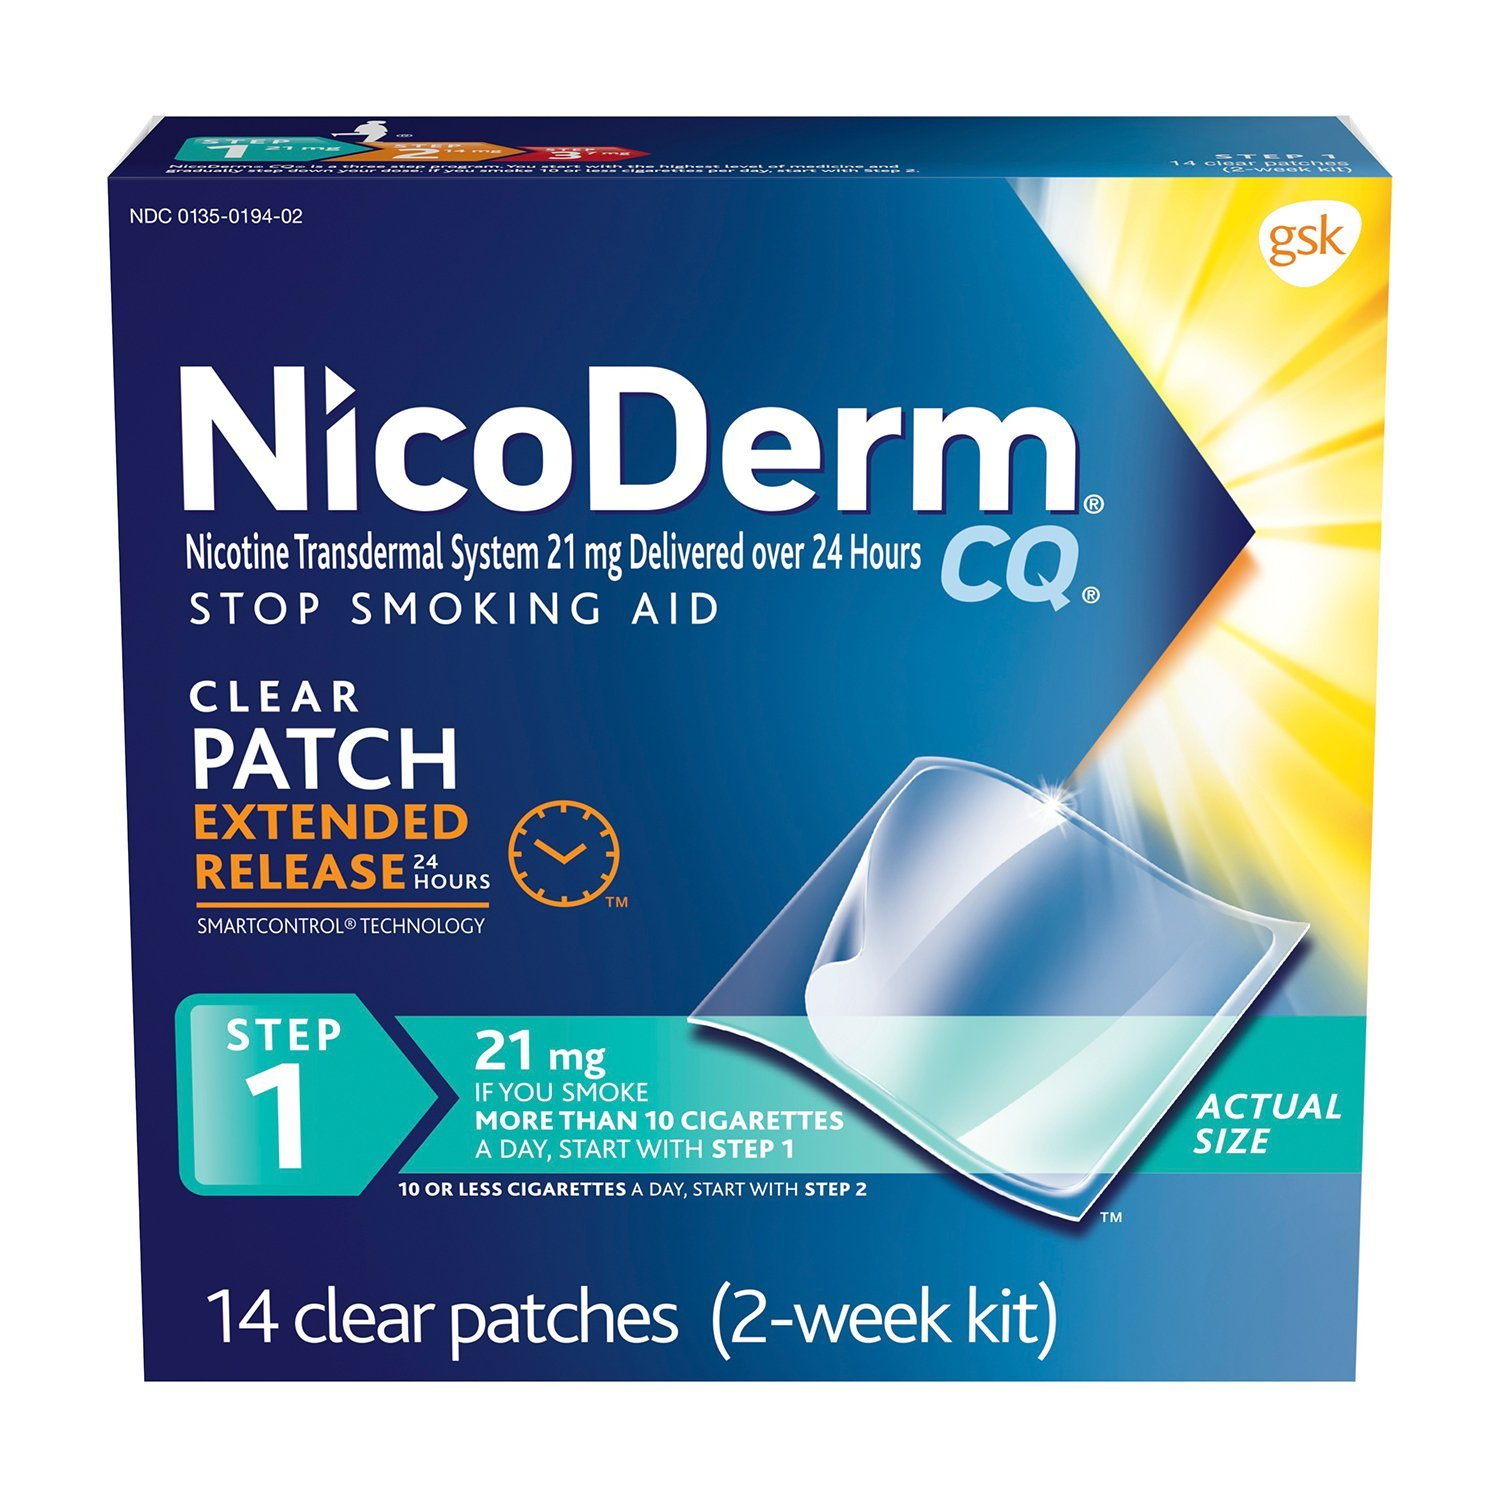 NicoDerm CQ Stop Smoking Aid 21 milligram Clear Nicotine Patches for Quitting Smoking, Step 1, 14 Count